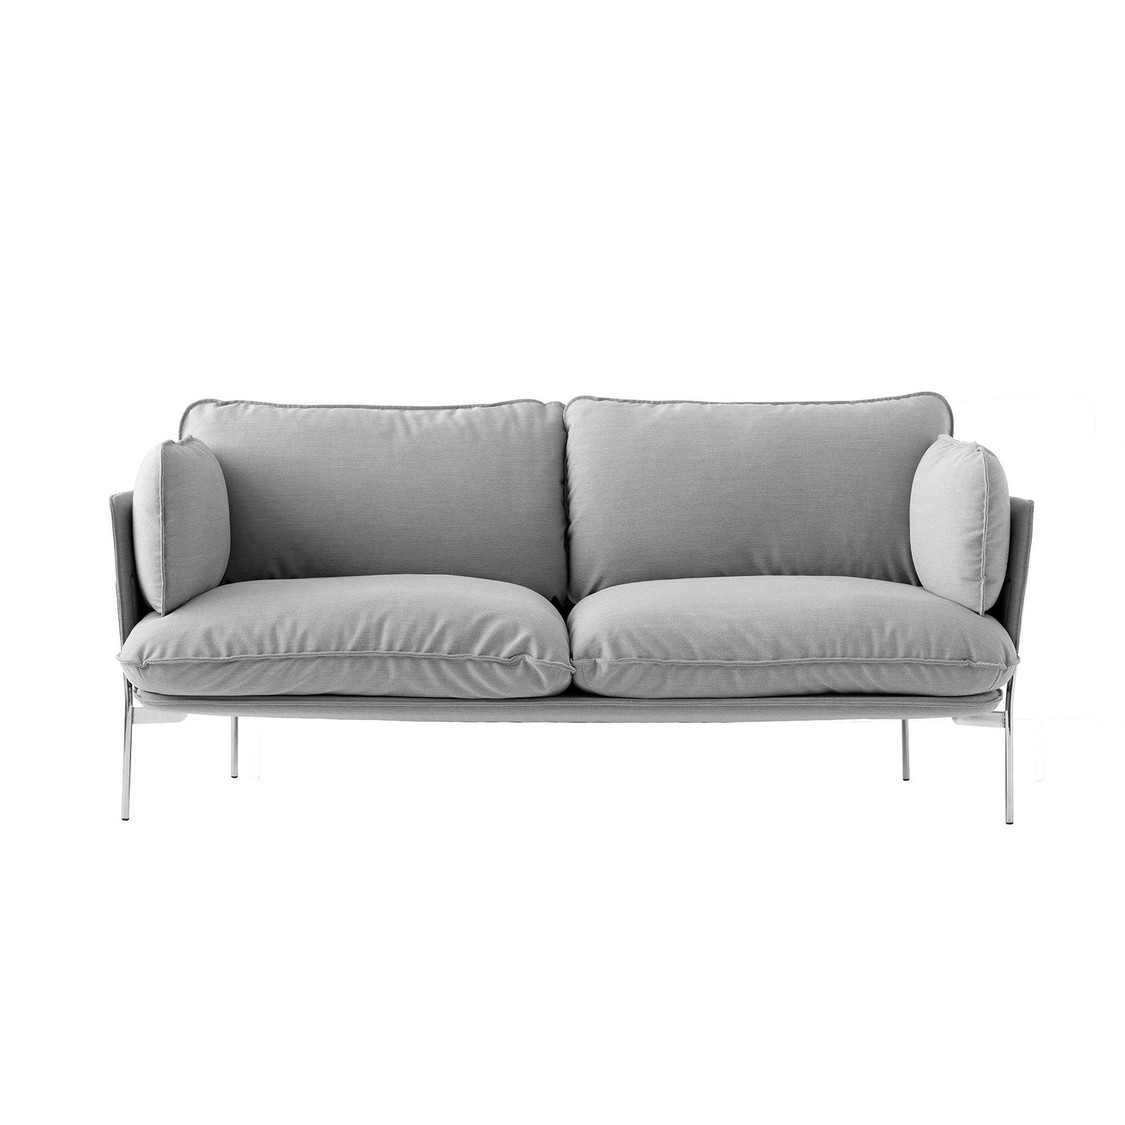 Cloud Ln2 2 Seater Sofa